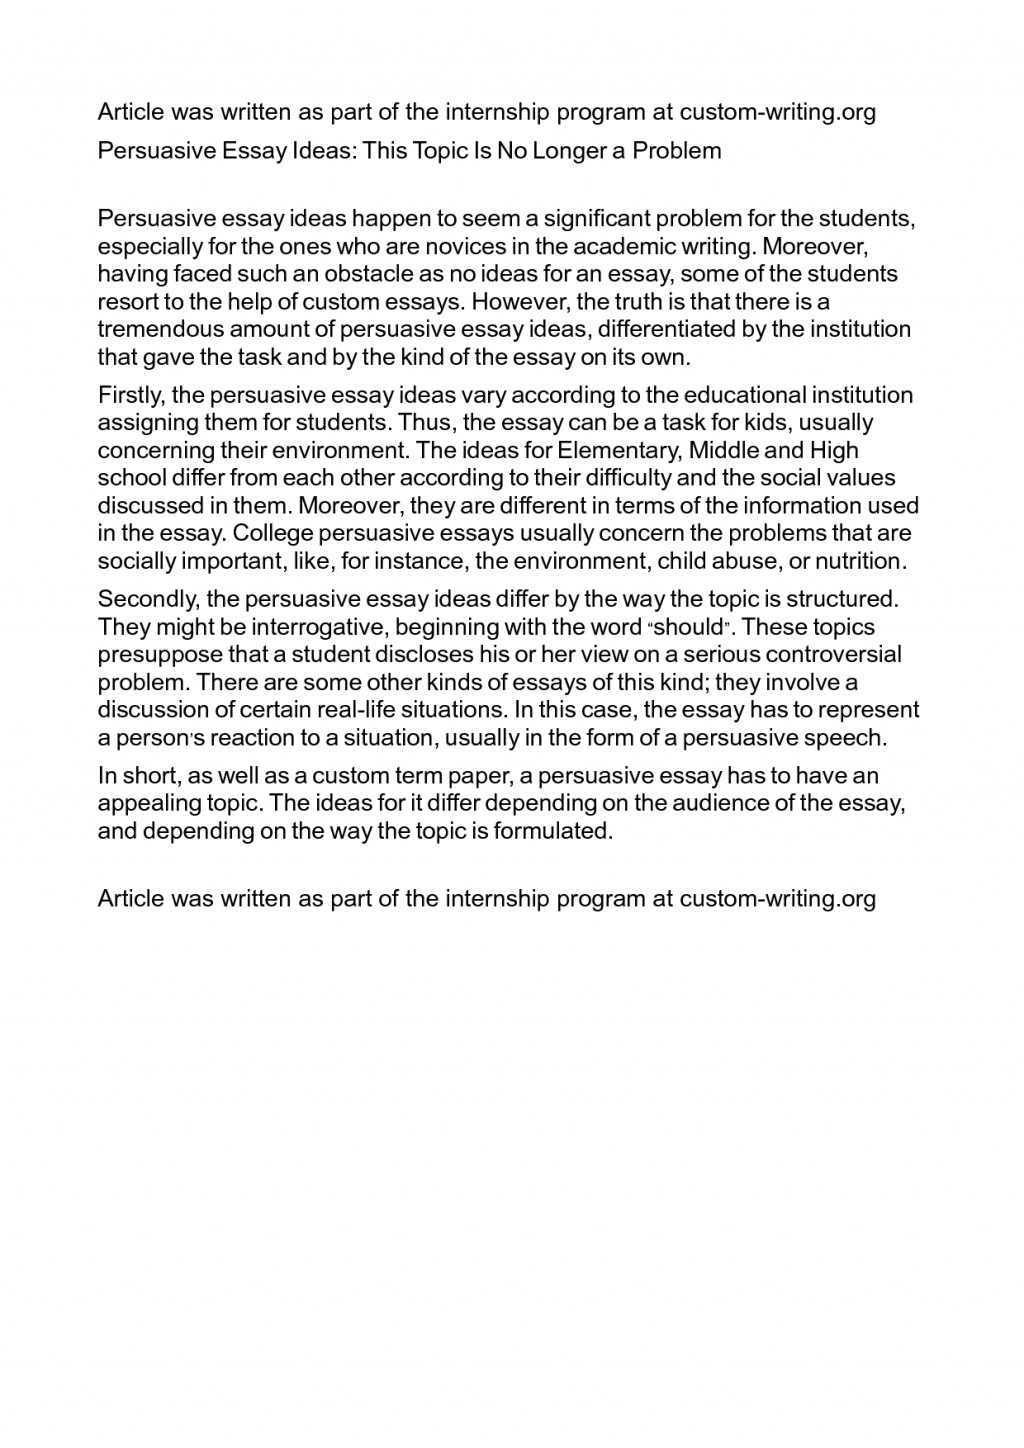 012 Persuasive Essay Topics Middle 480361 Example For Imposing School Prompts Argumentative High Pdf Large